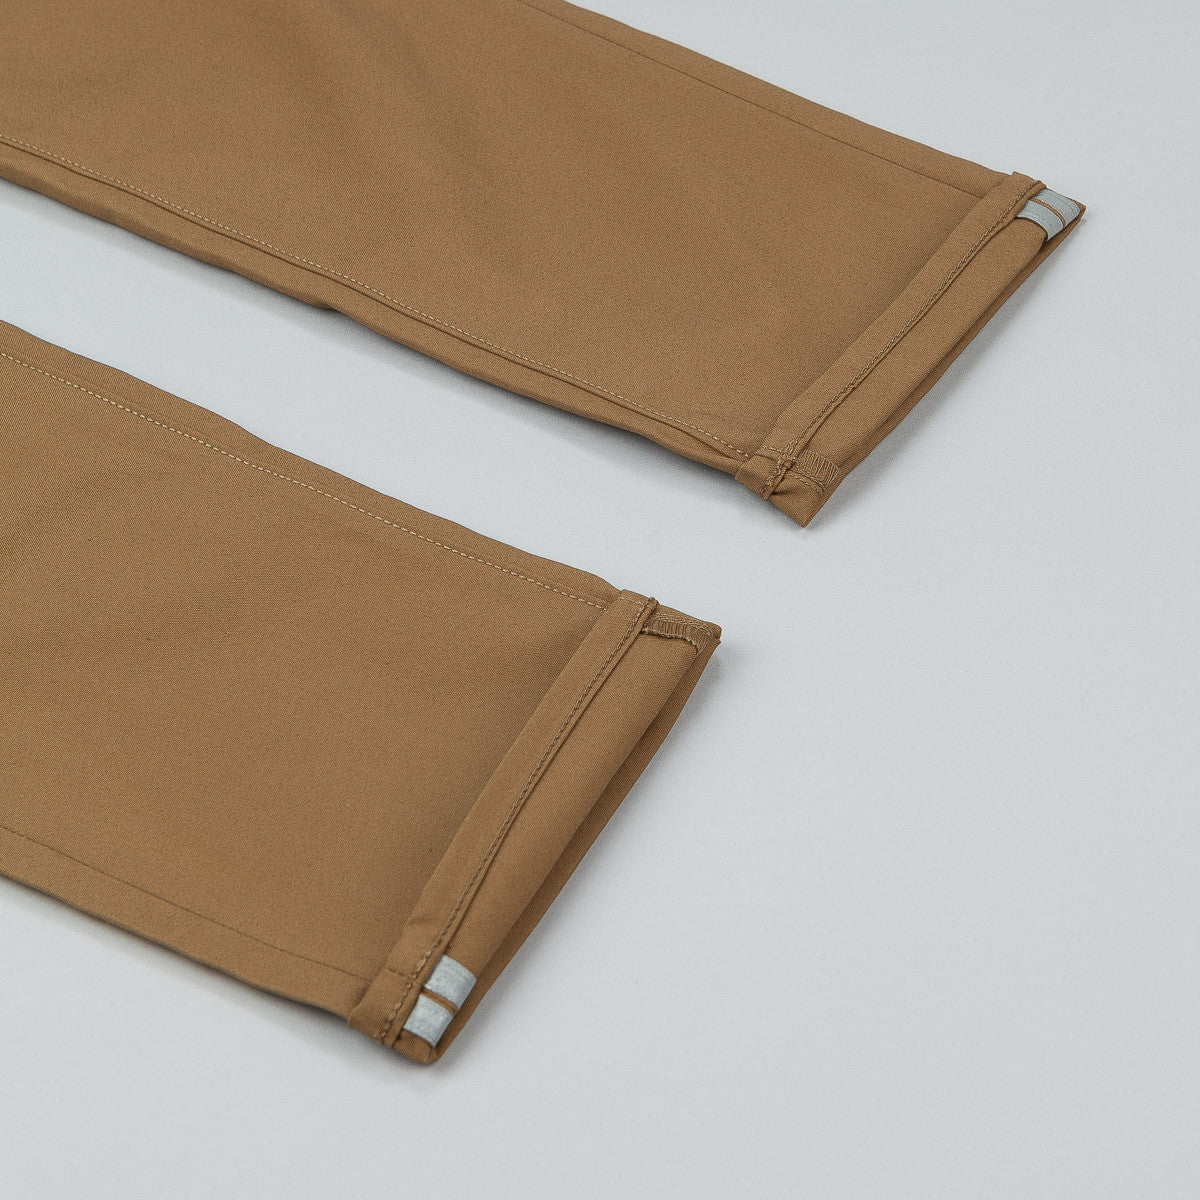 Levi's® Commuter 511 Trousers - Cougar Canvas Eco